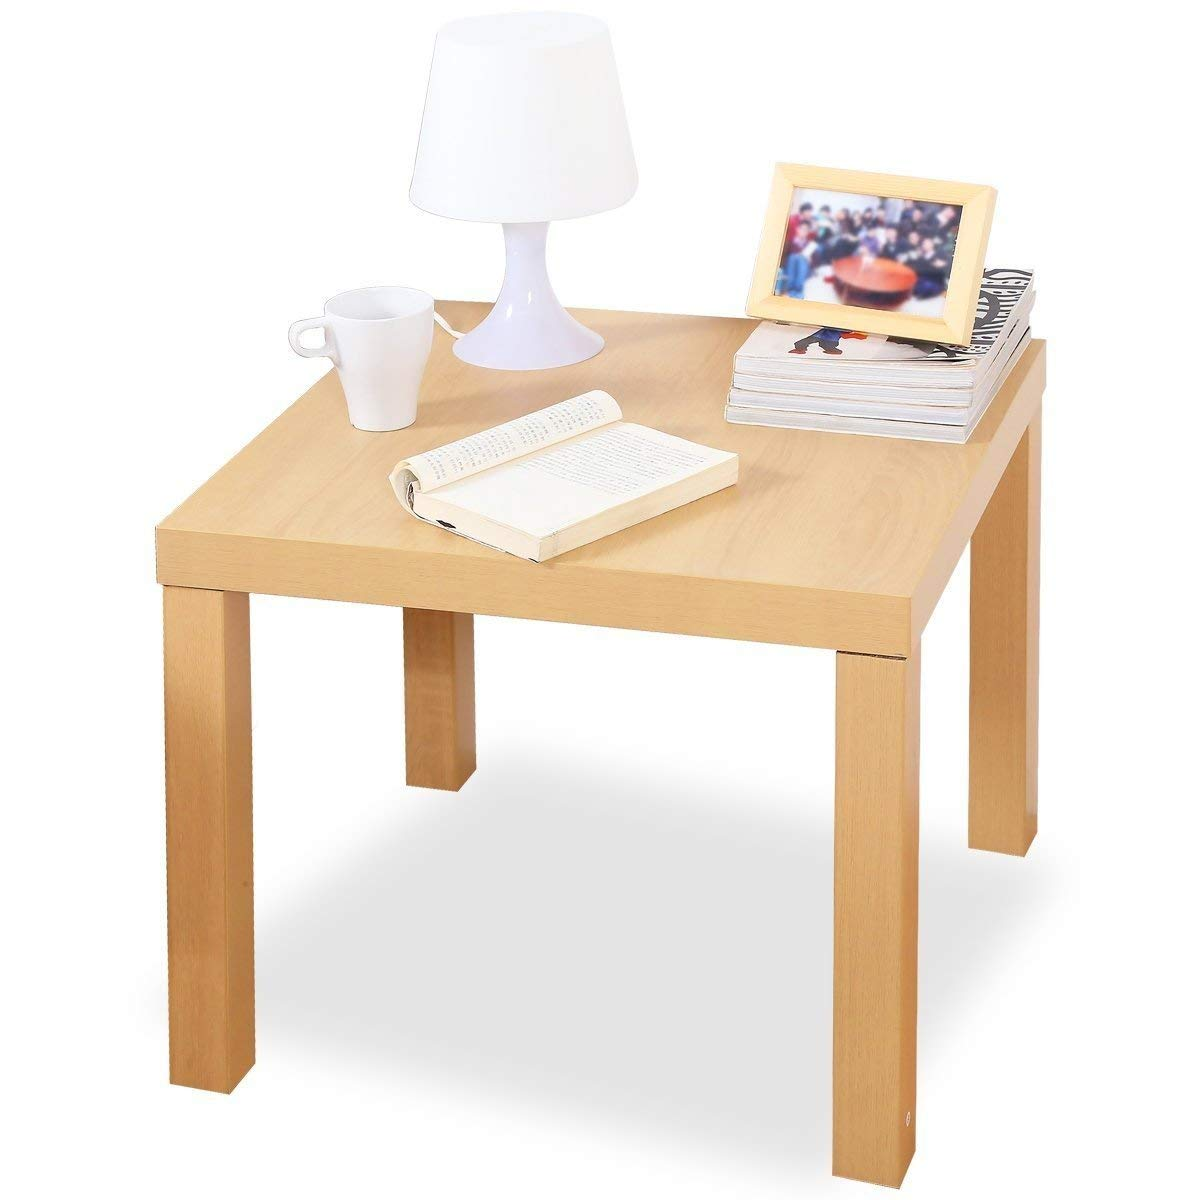 indoor multi function accent table study computer home office bedroom tables desk living room modern style affordable house decor hampton bay spring haven collection tablecloth